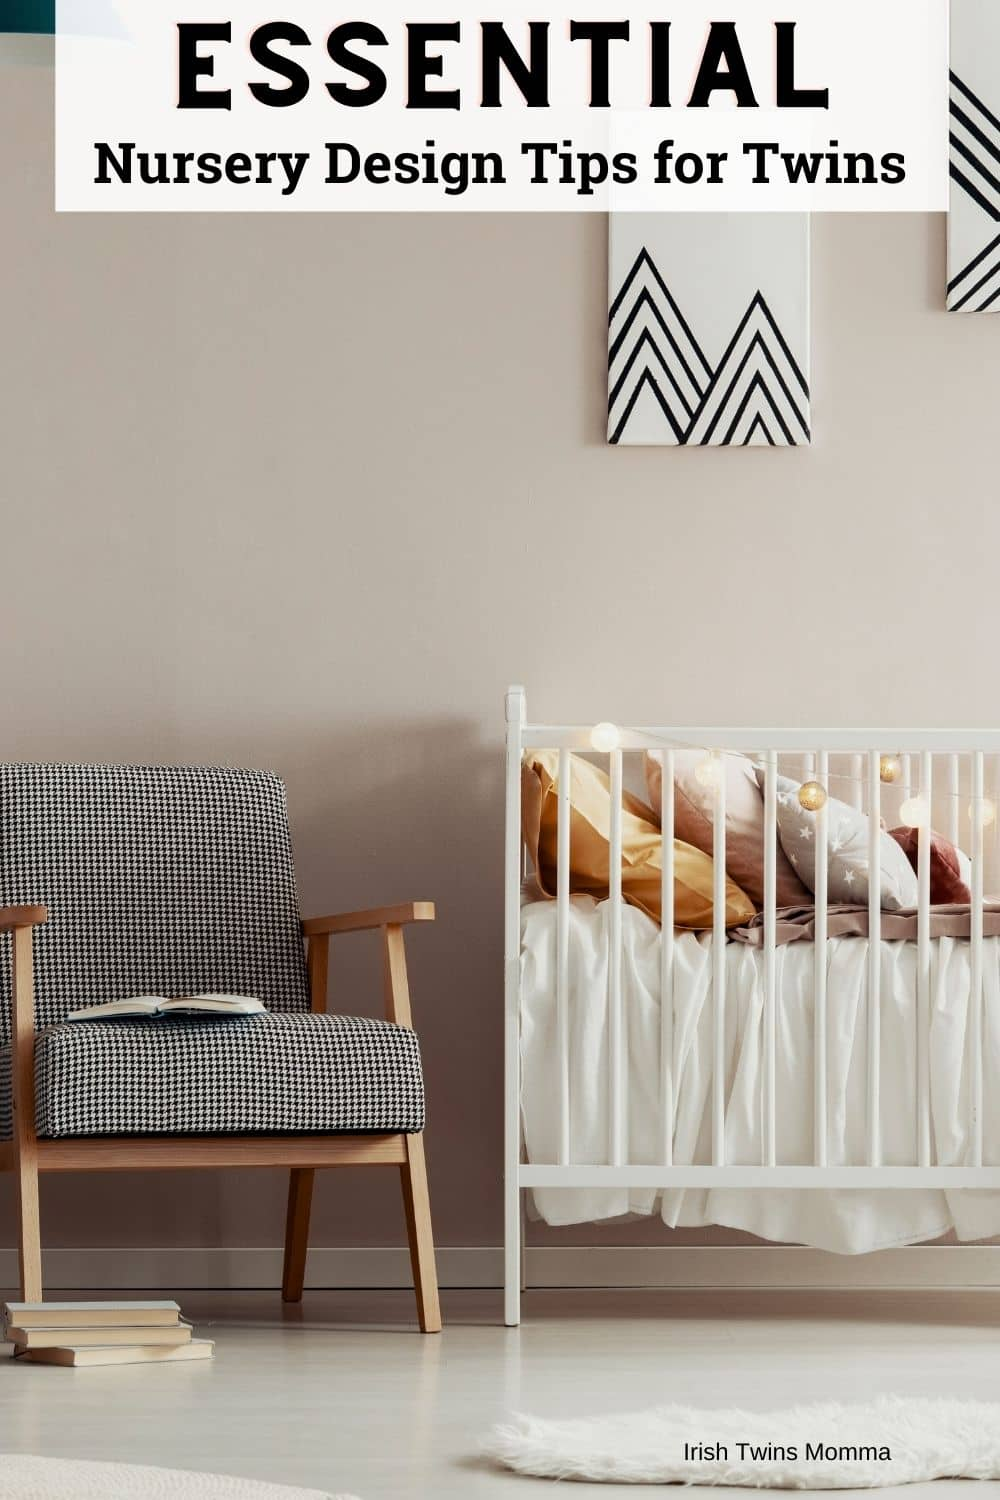 Essential nursery design tips and tricks for twins